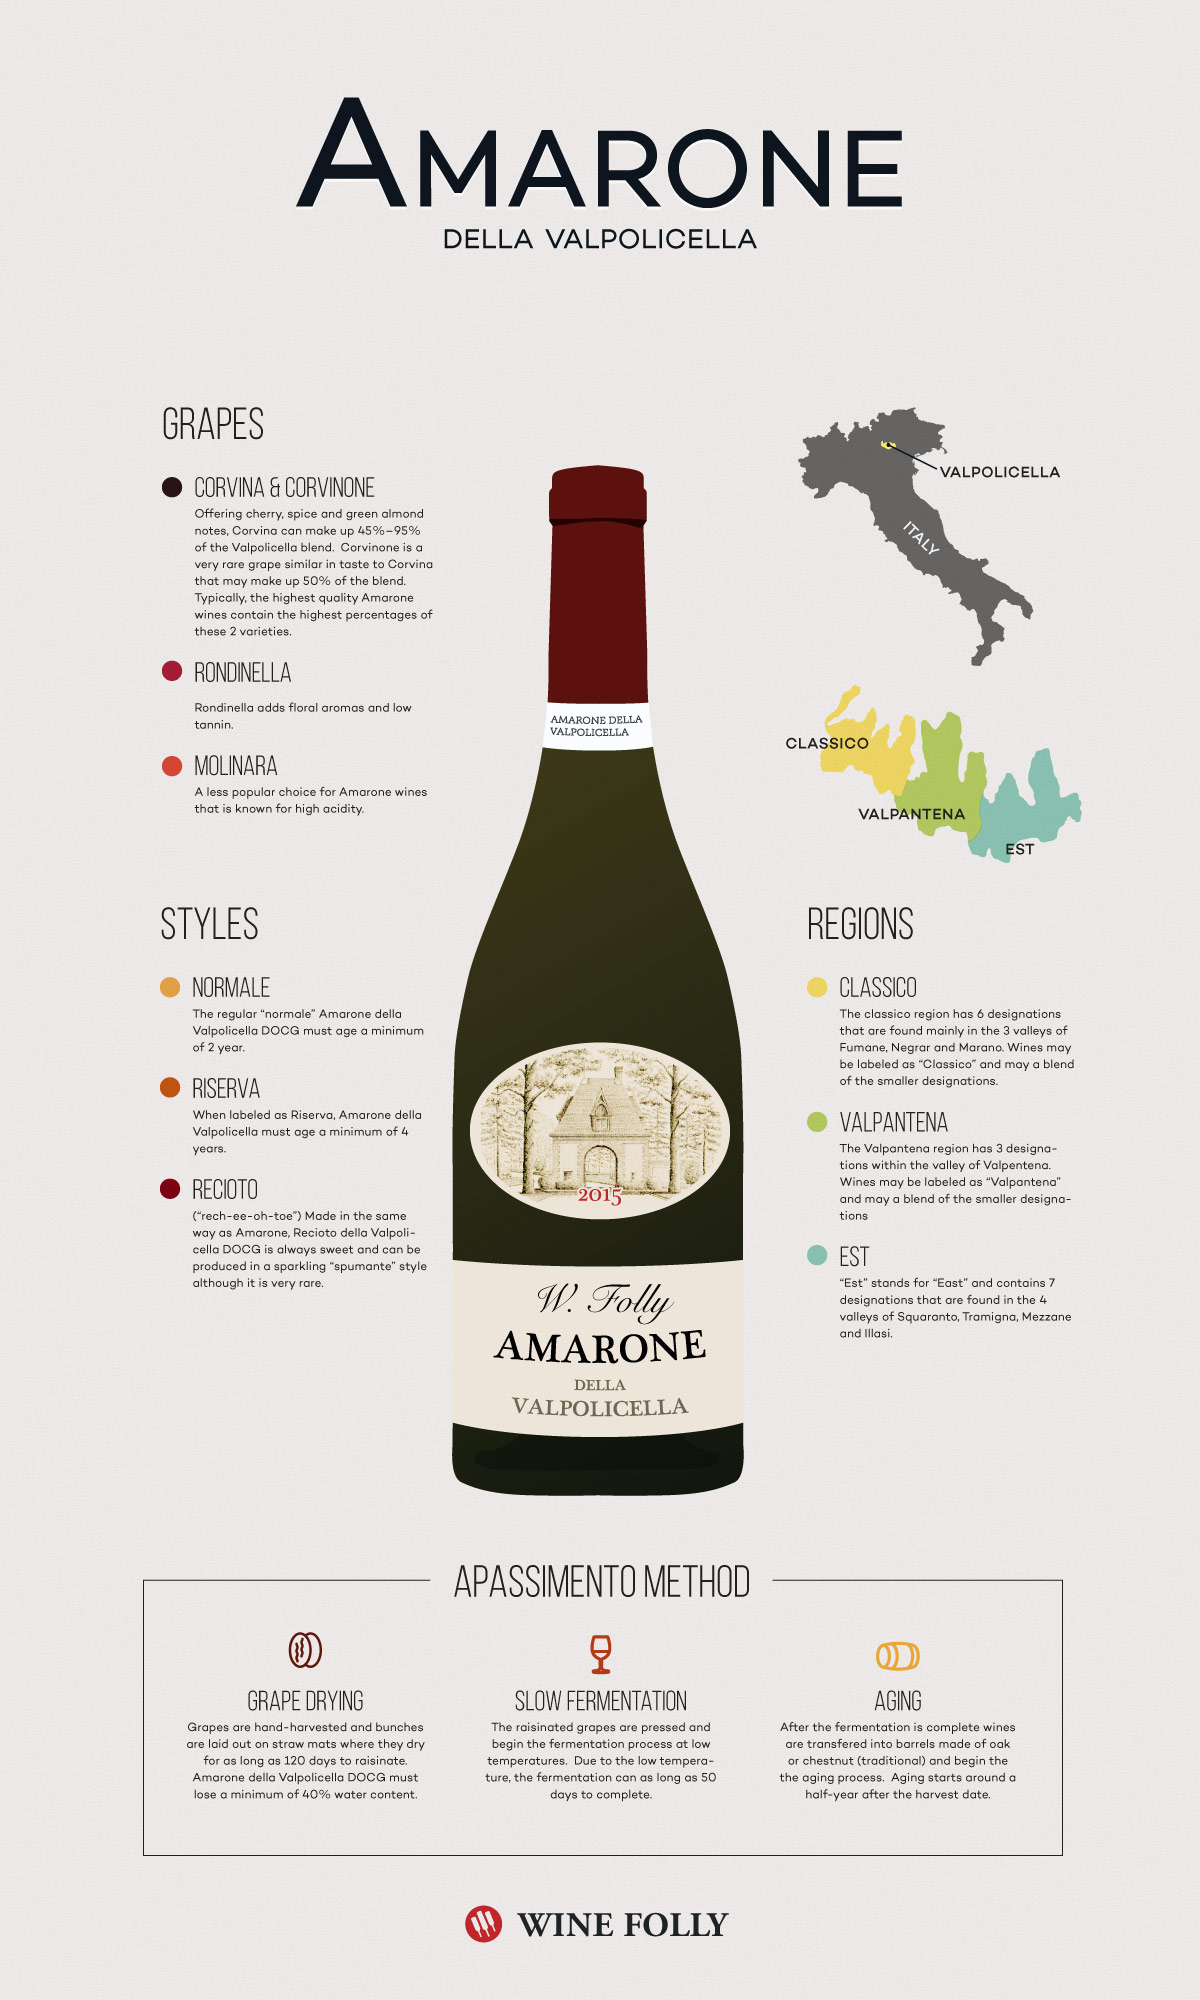 Amarone wine guide by Wine Folly